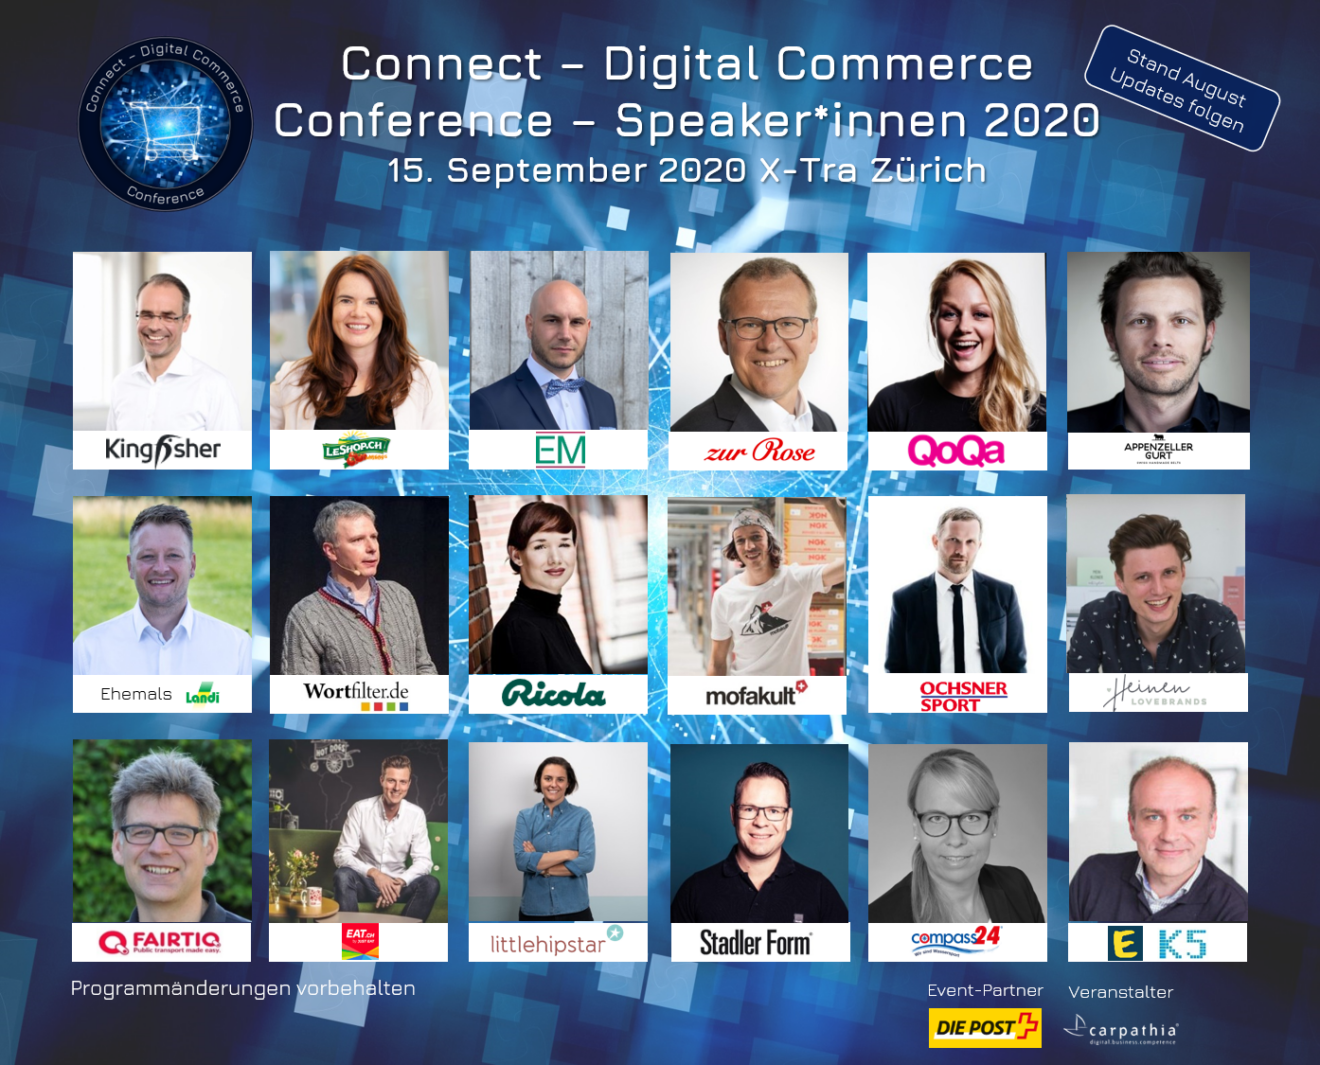 Hochkarätige Speaker*innen der Connect - Digital Commerce Conference 2020 vom 15. September 2020 im X-Tra in Zürich